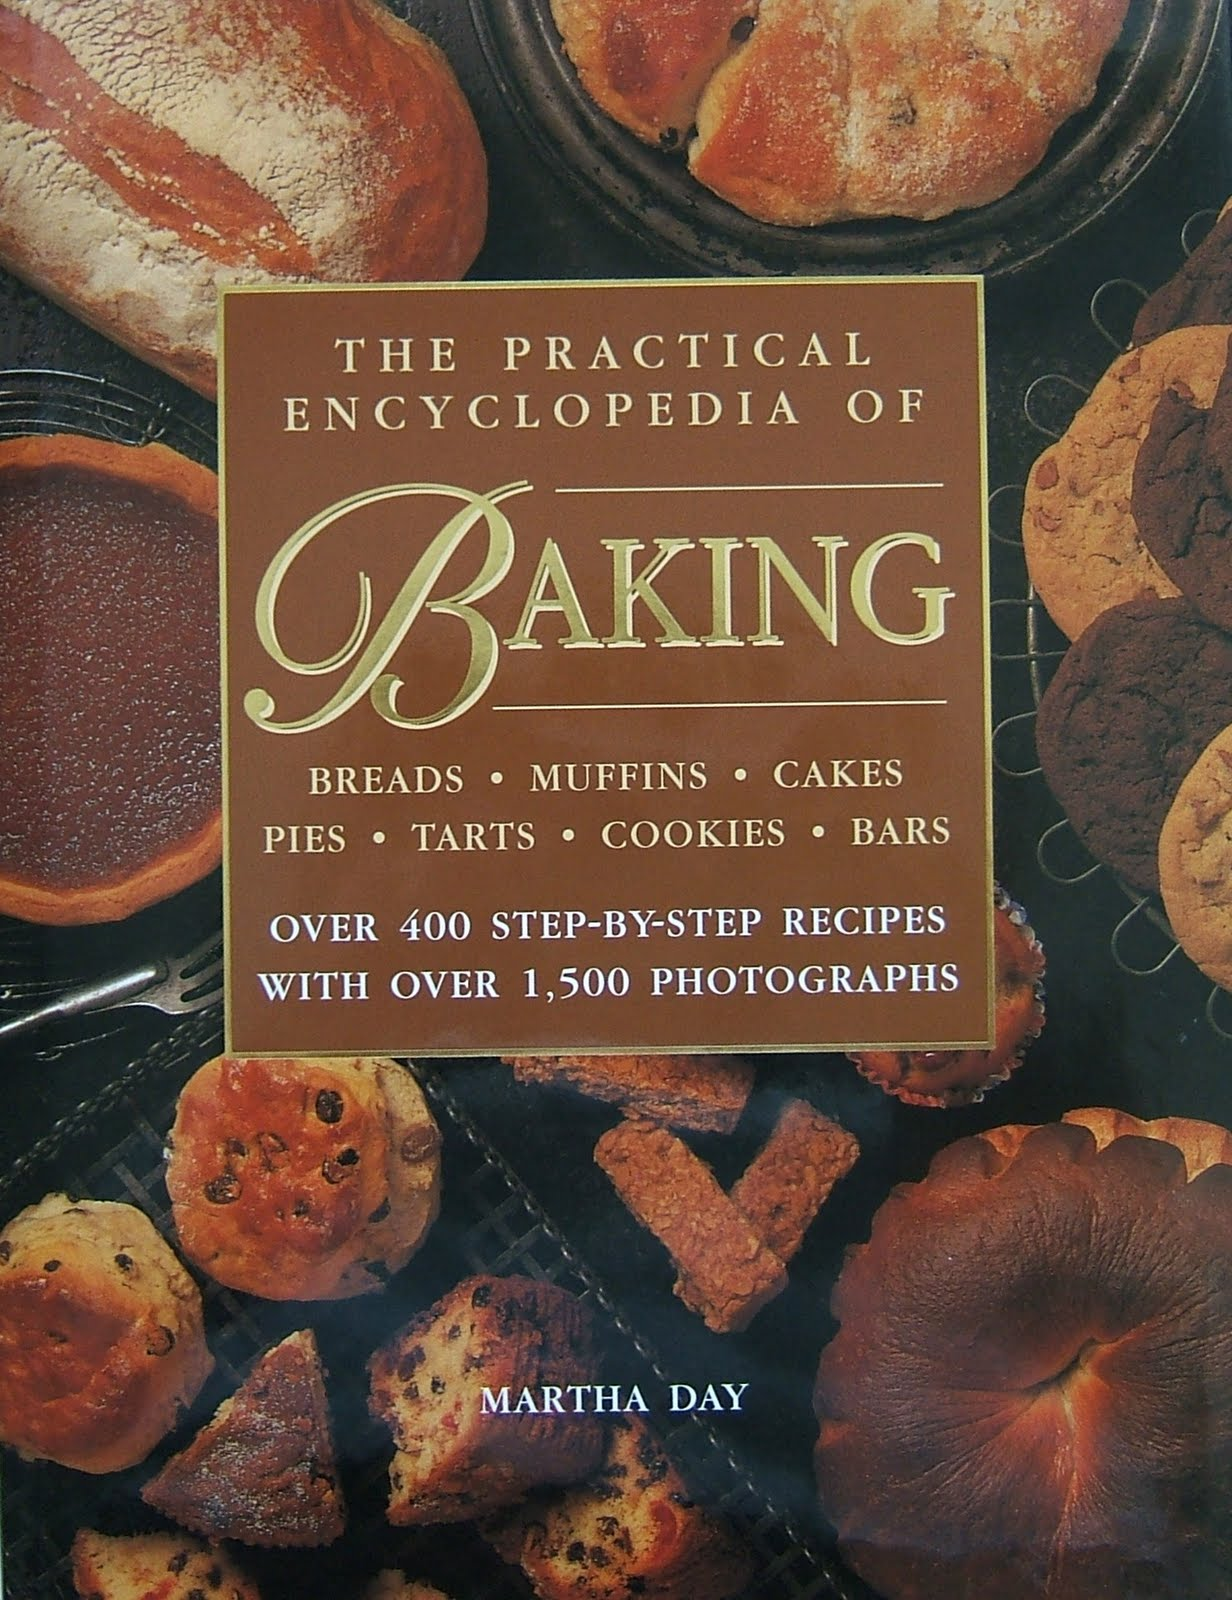 The Practical Encyclopedia of Baking Cookbook Review